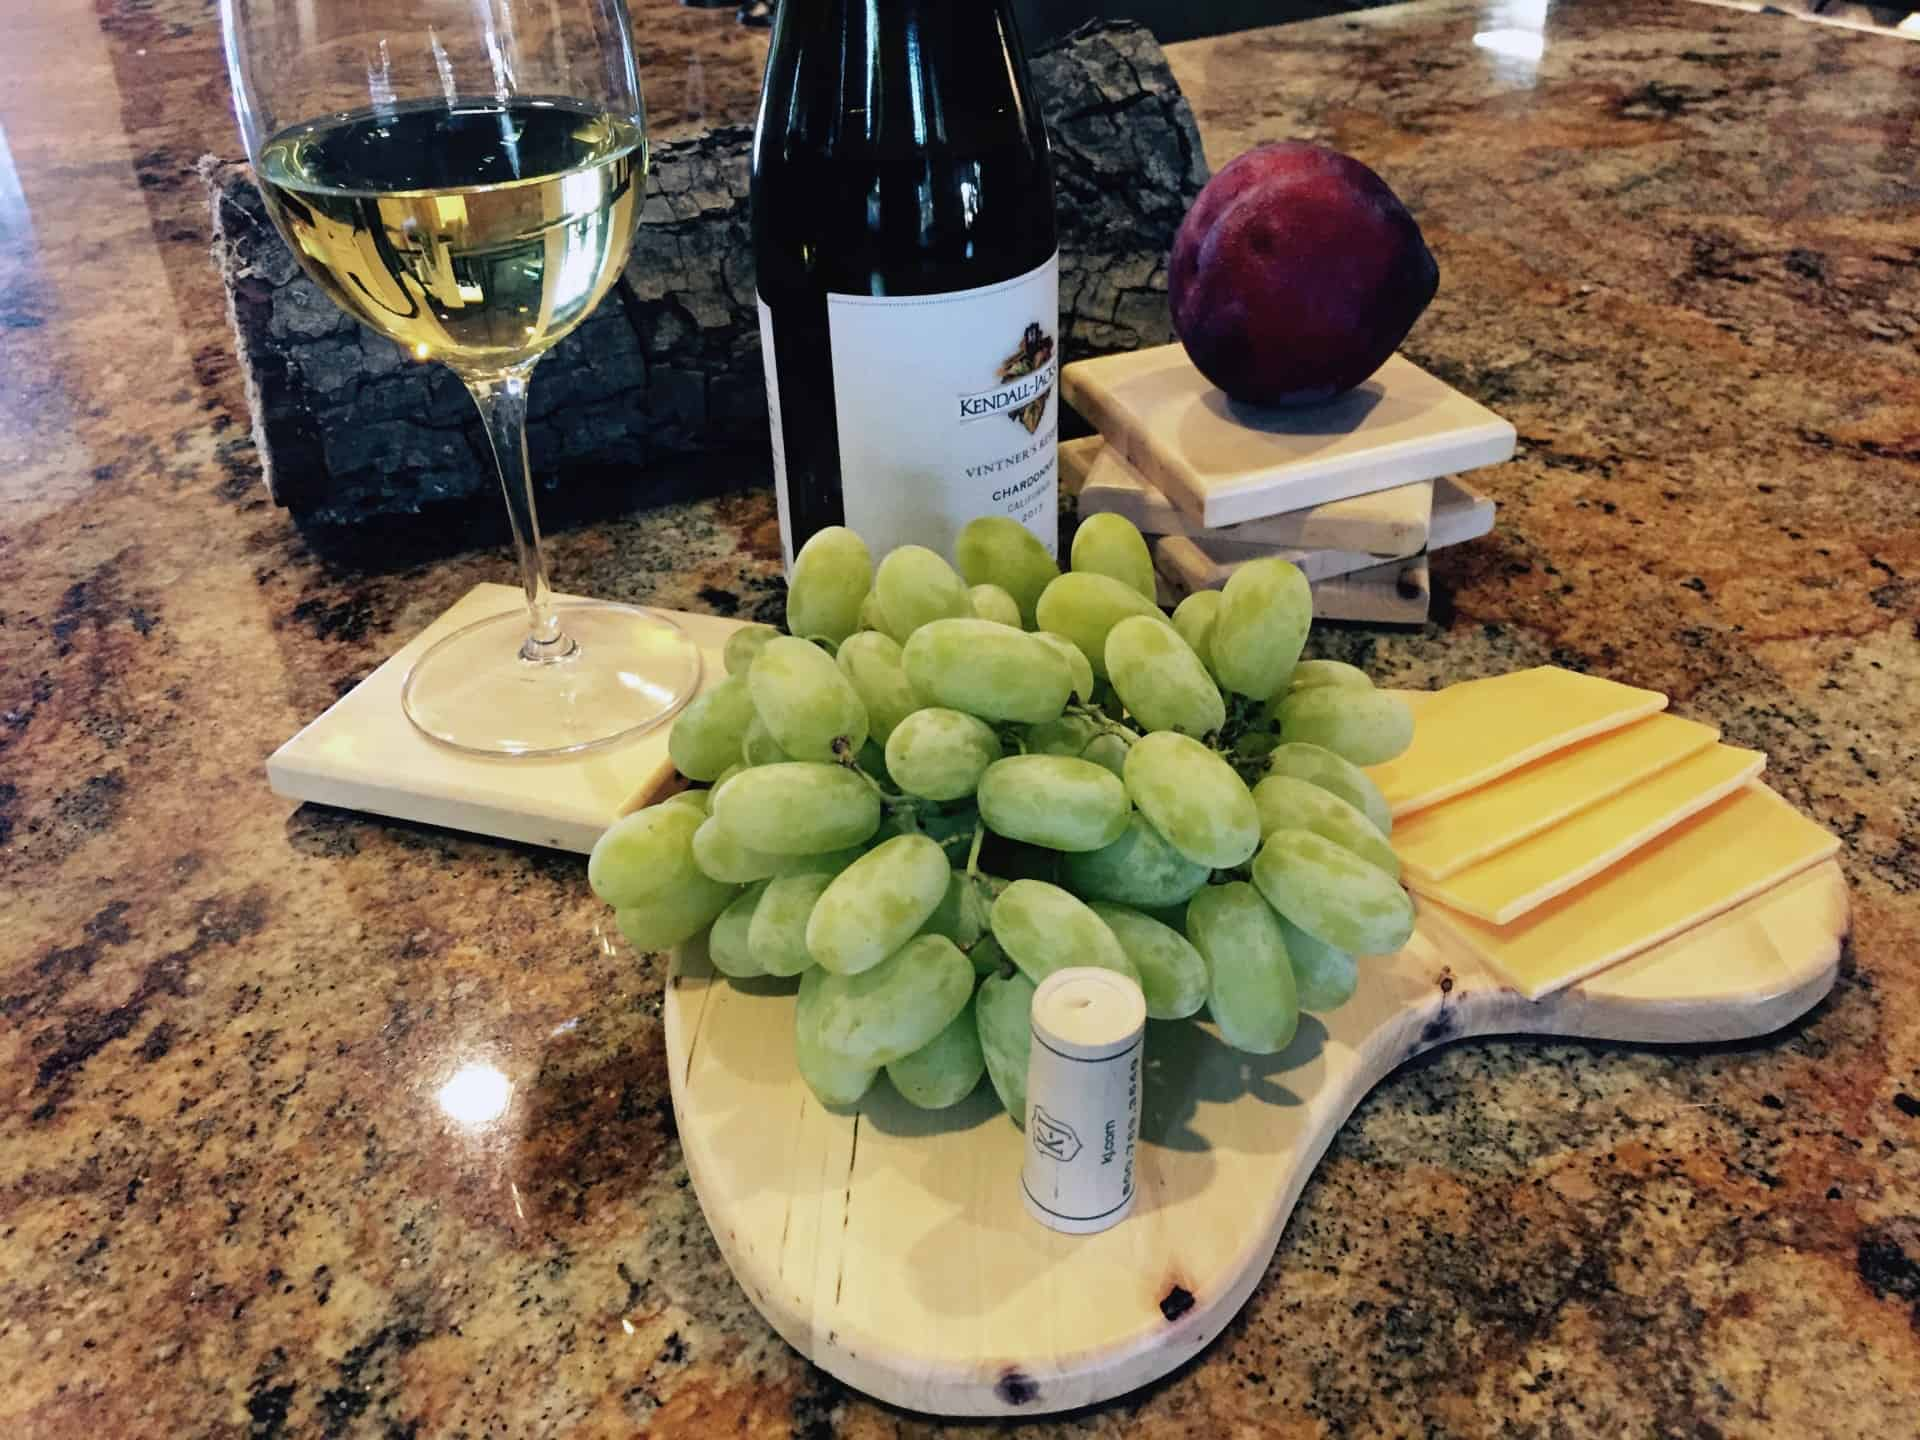 Coasters and Cheese Tray from a Tree Branch - pic